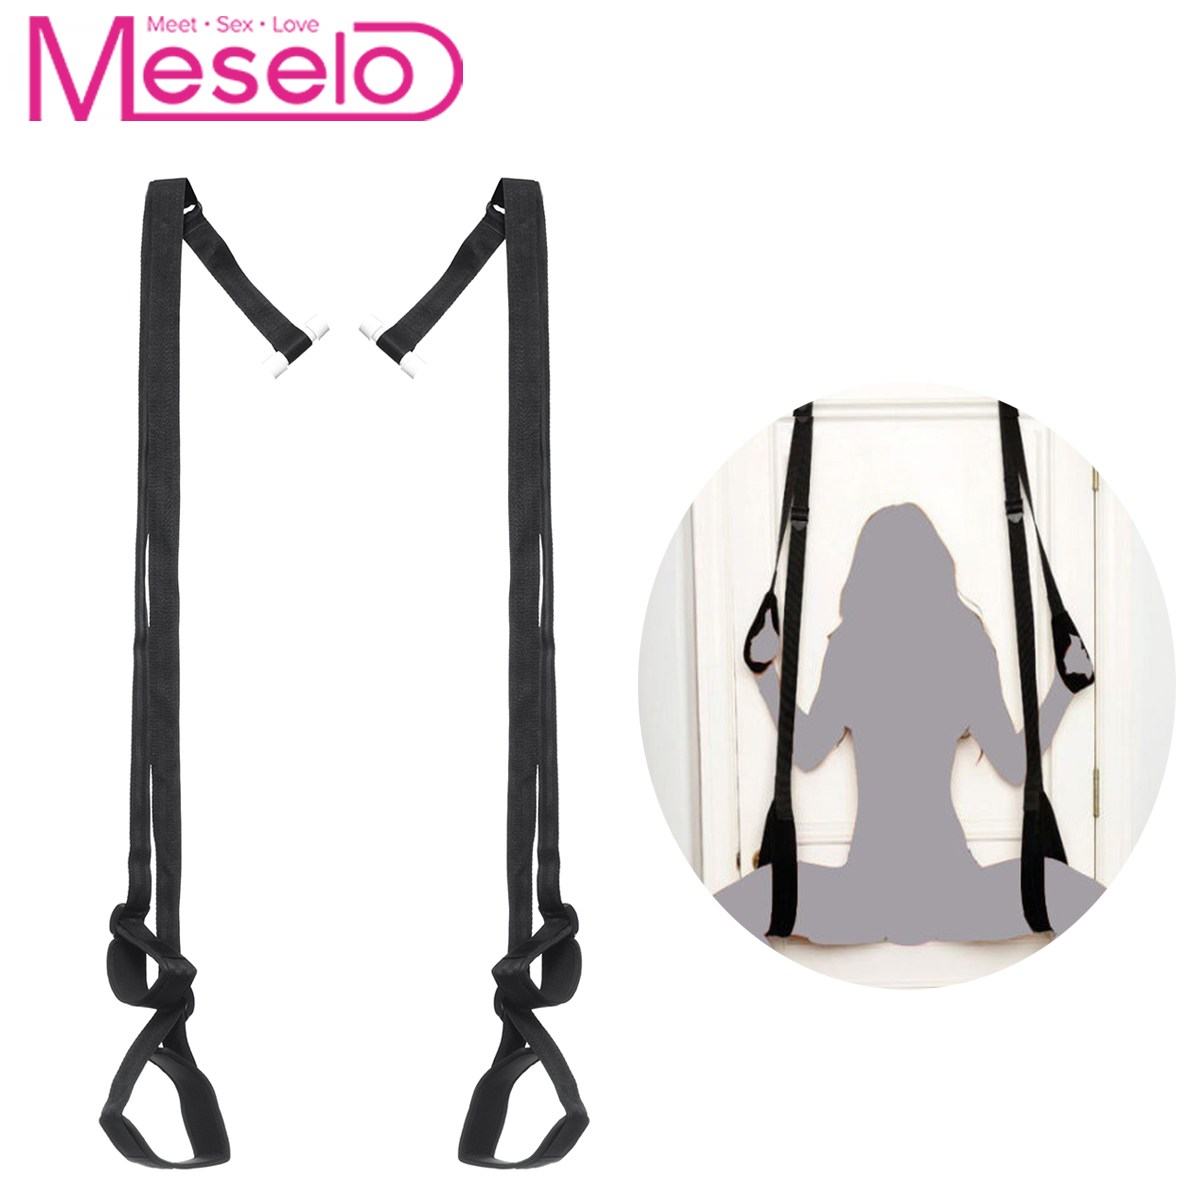 Meselo <font><b>Adult</b></font> bdsm Game <font><b>Sex</b></font> Toys Swing Bondage Straps For Couple Flirting Women Men Sexual Hanging <font><b>Sling</b></font> Rope Toy Erotic Product image